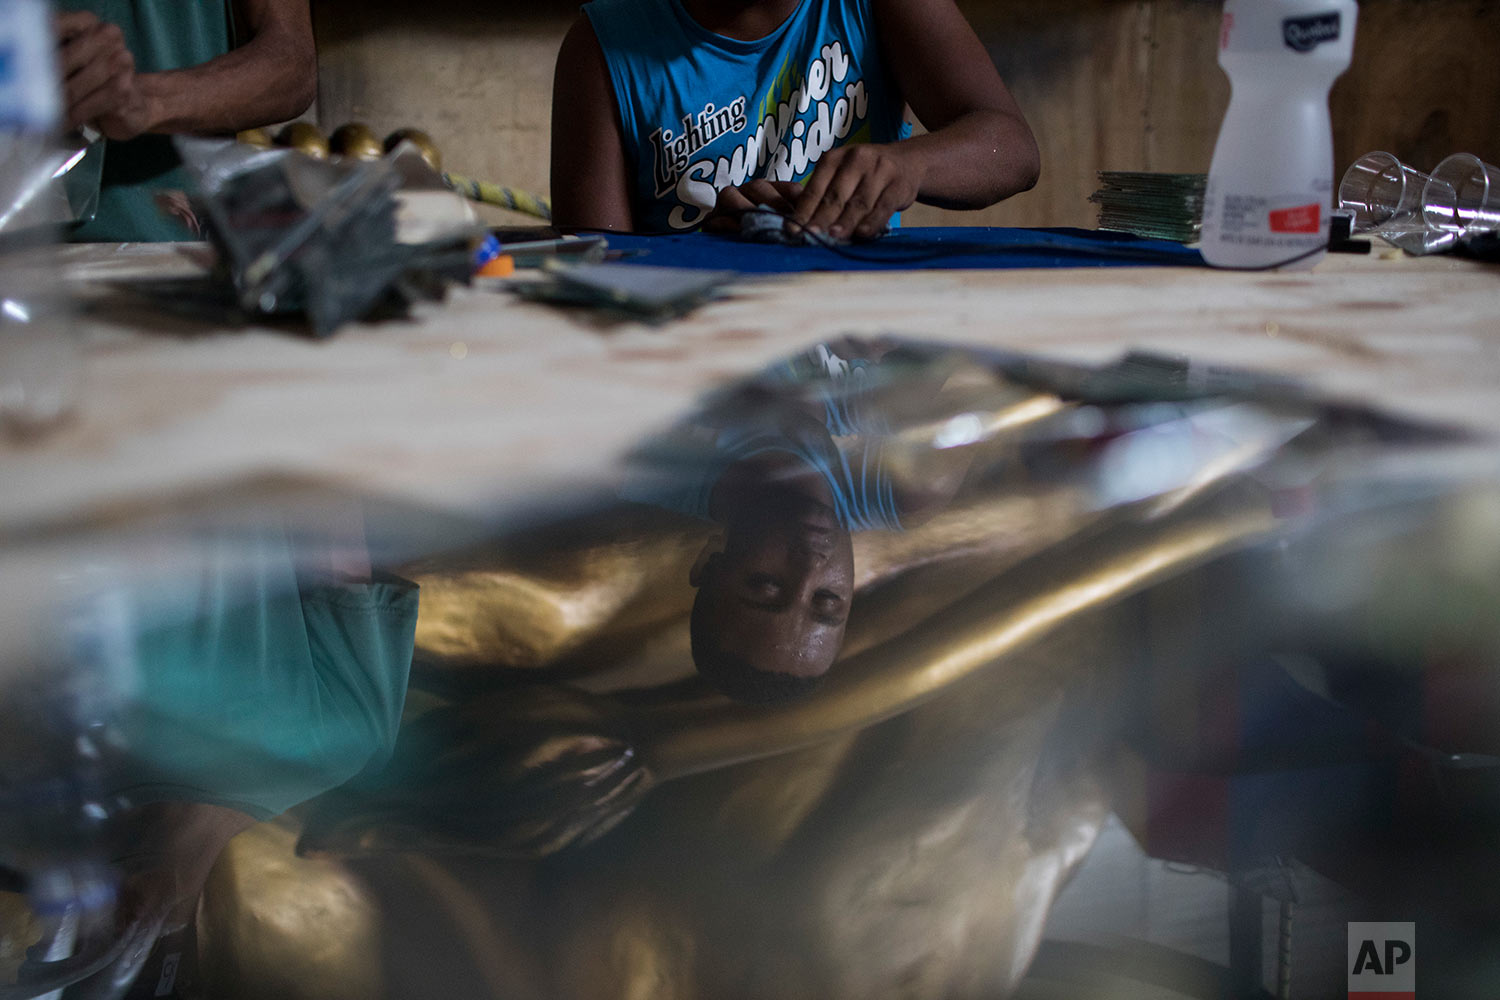 """In this Jan. 16, 2018 photo, a man cleans glass that will be part of a carnival float used by the the Paraiso do Tuiuti samba school, whose theme this carnival is Brazil's history with slavery, in Rio de Janeiro, Brazil. """"Our music questions whether slavery is actually over,"""" said Jack Vasconcelos, the group's art director. (AP Photo/Leo Correa)"""